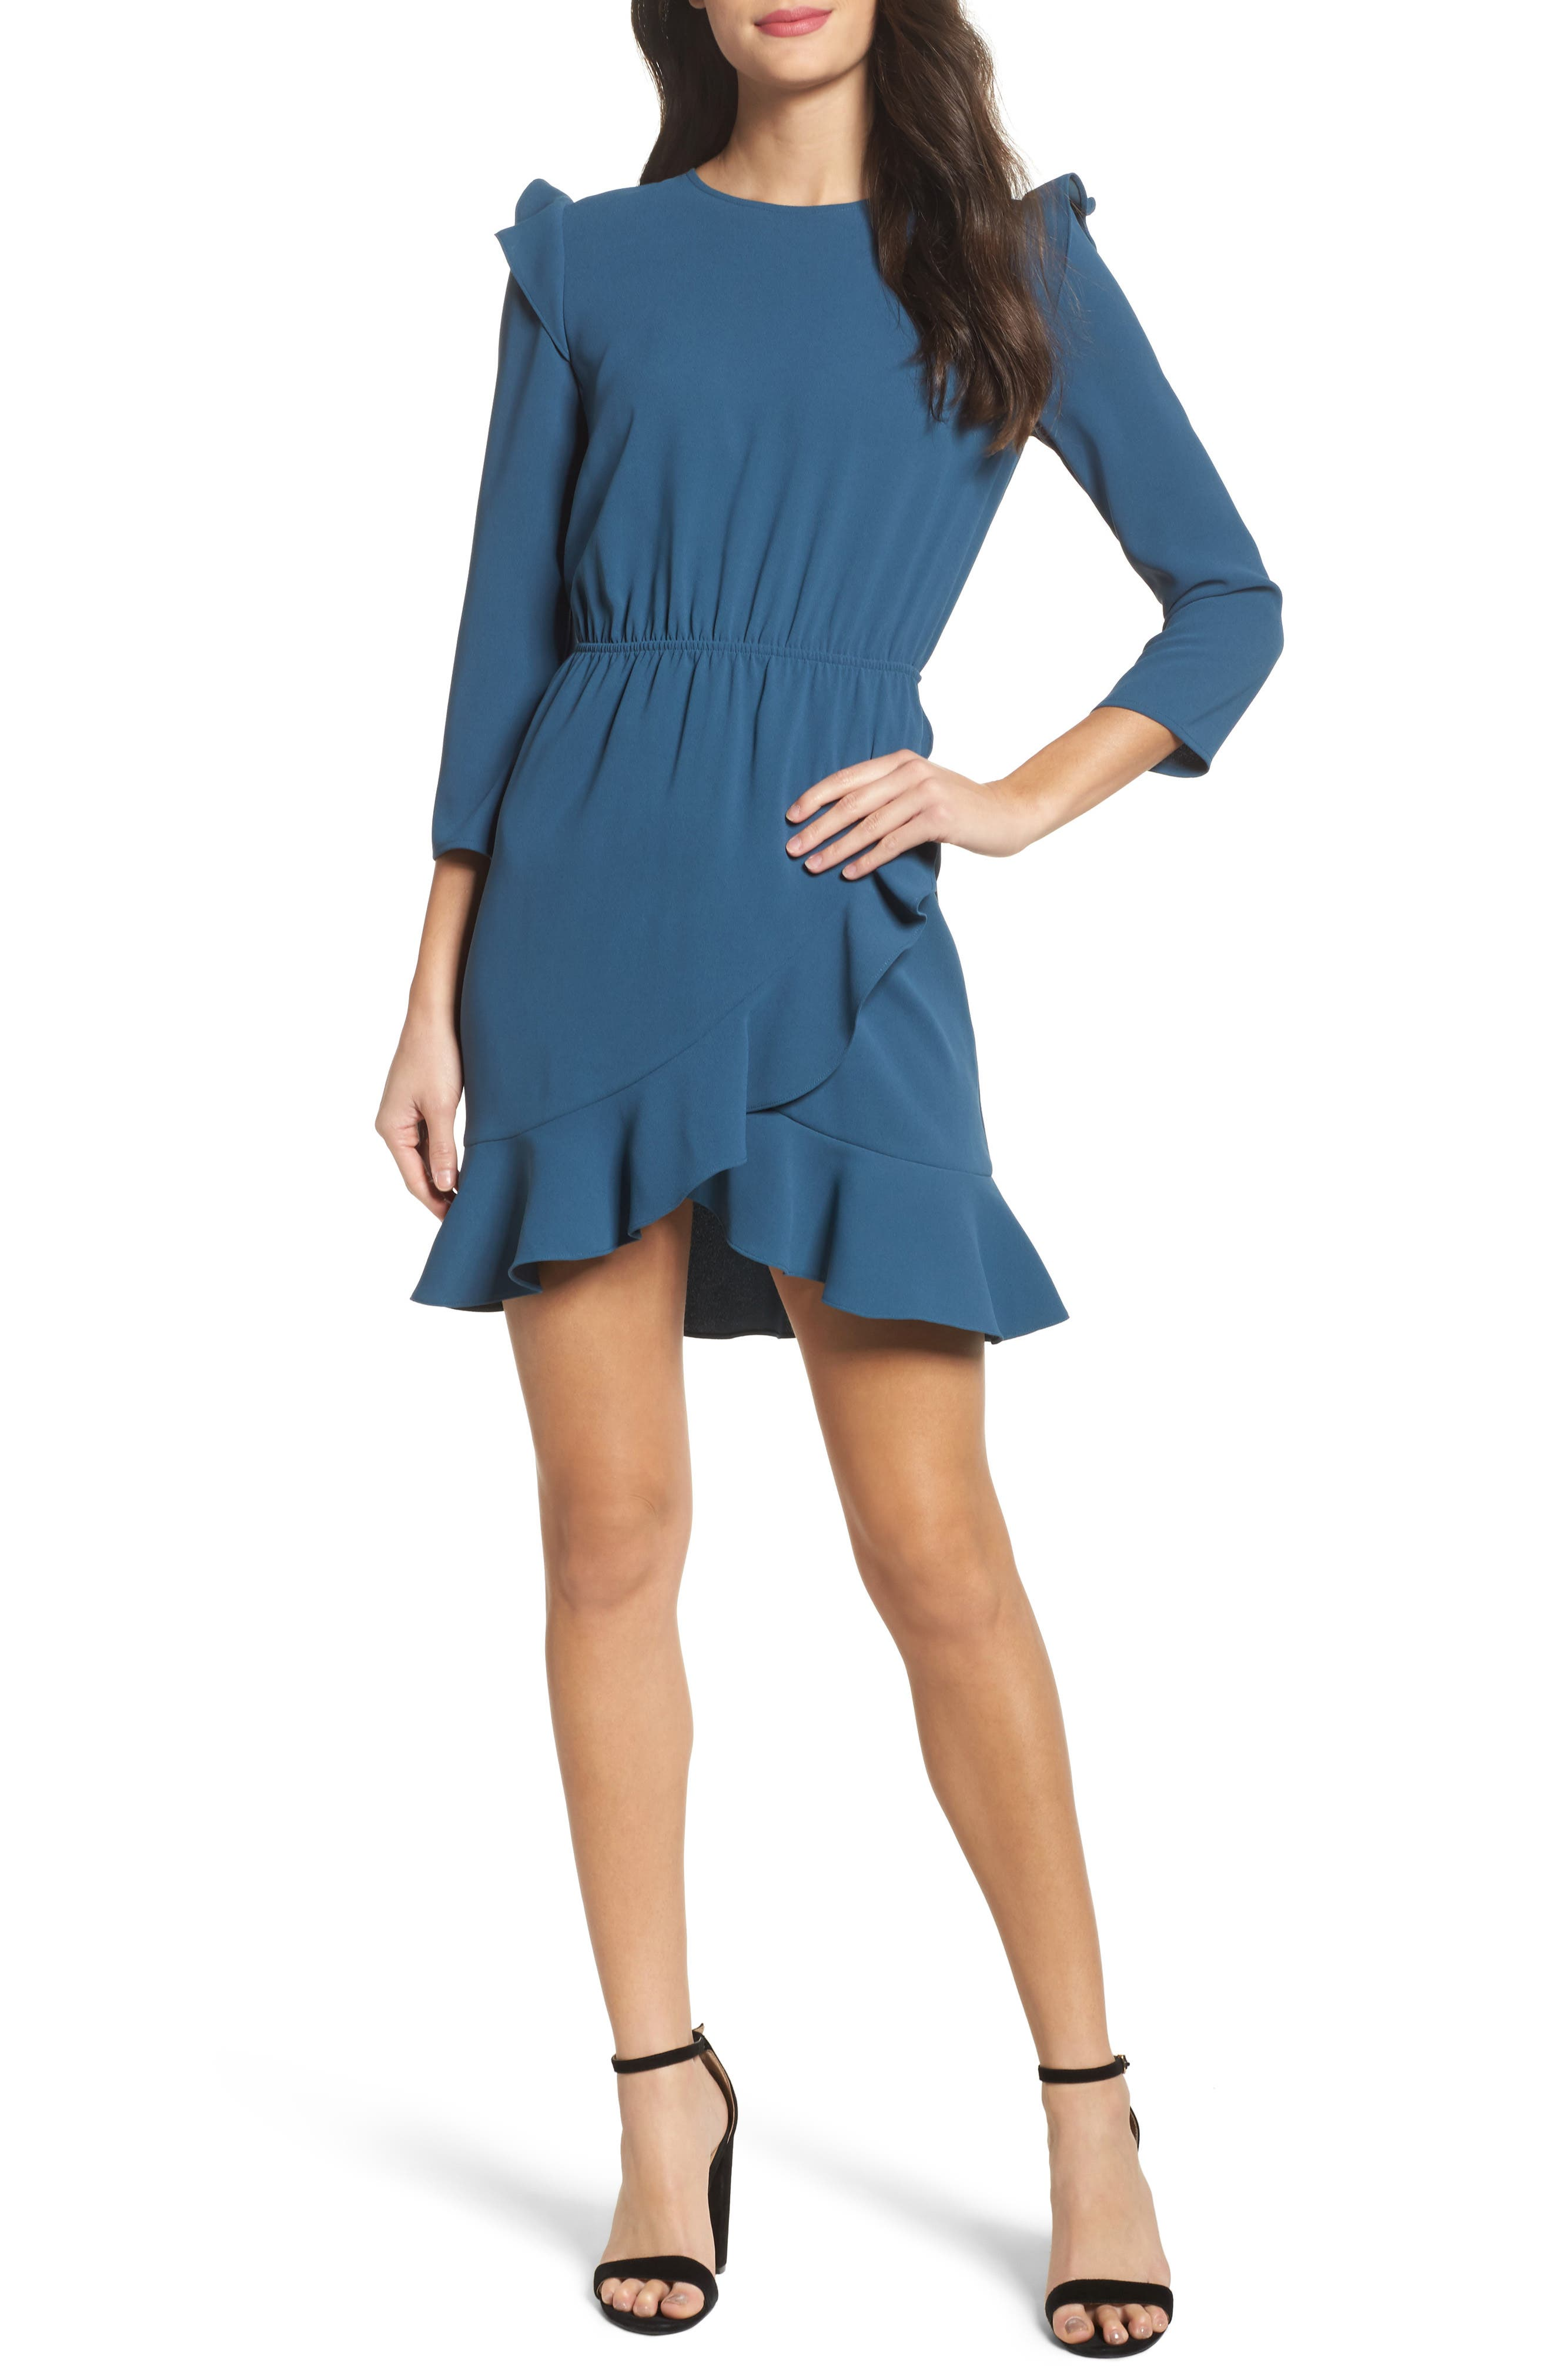 Main Image - Ali & Jay St Germain Ruffle Fit & Flare Dress